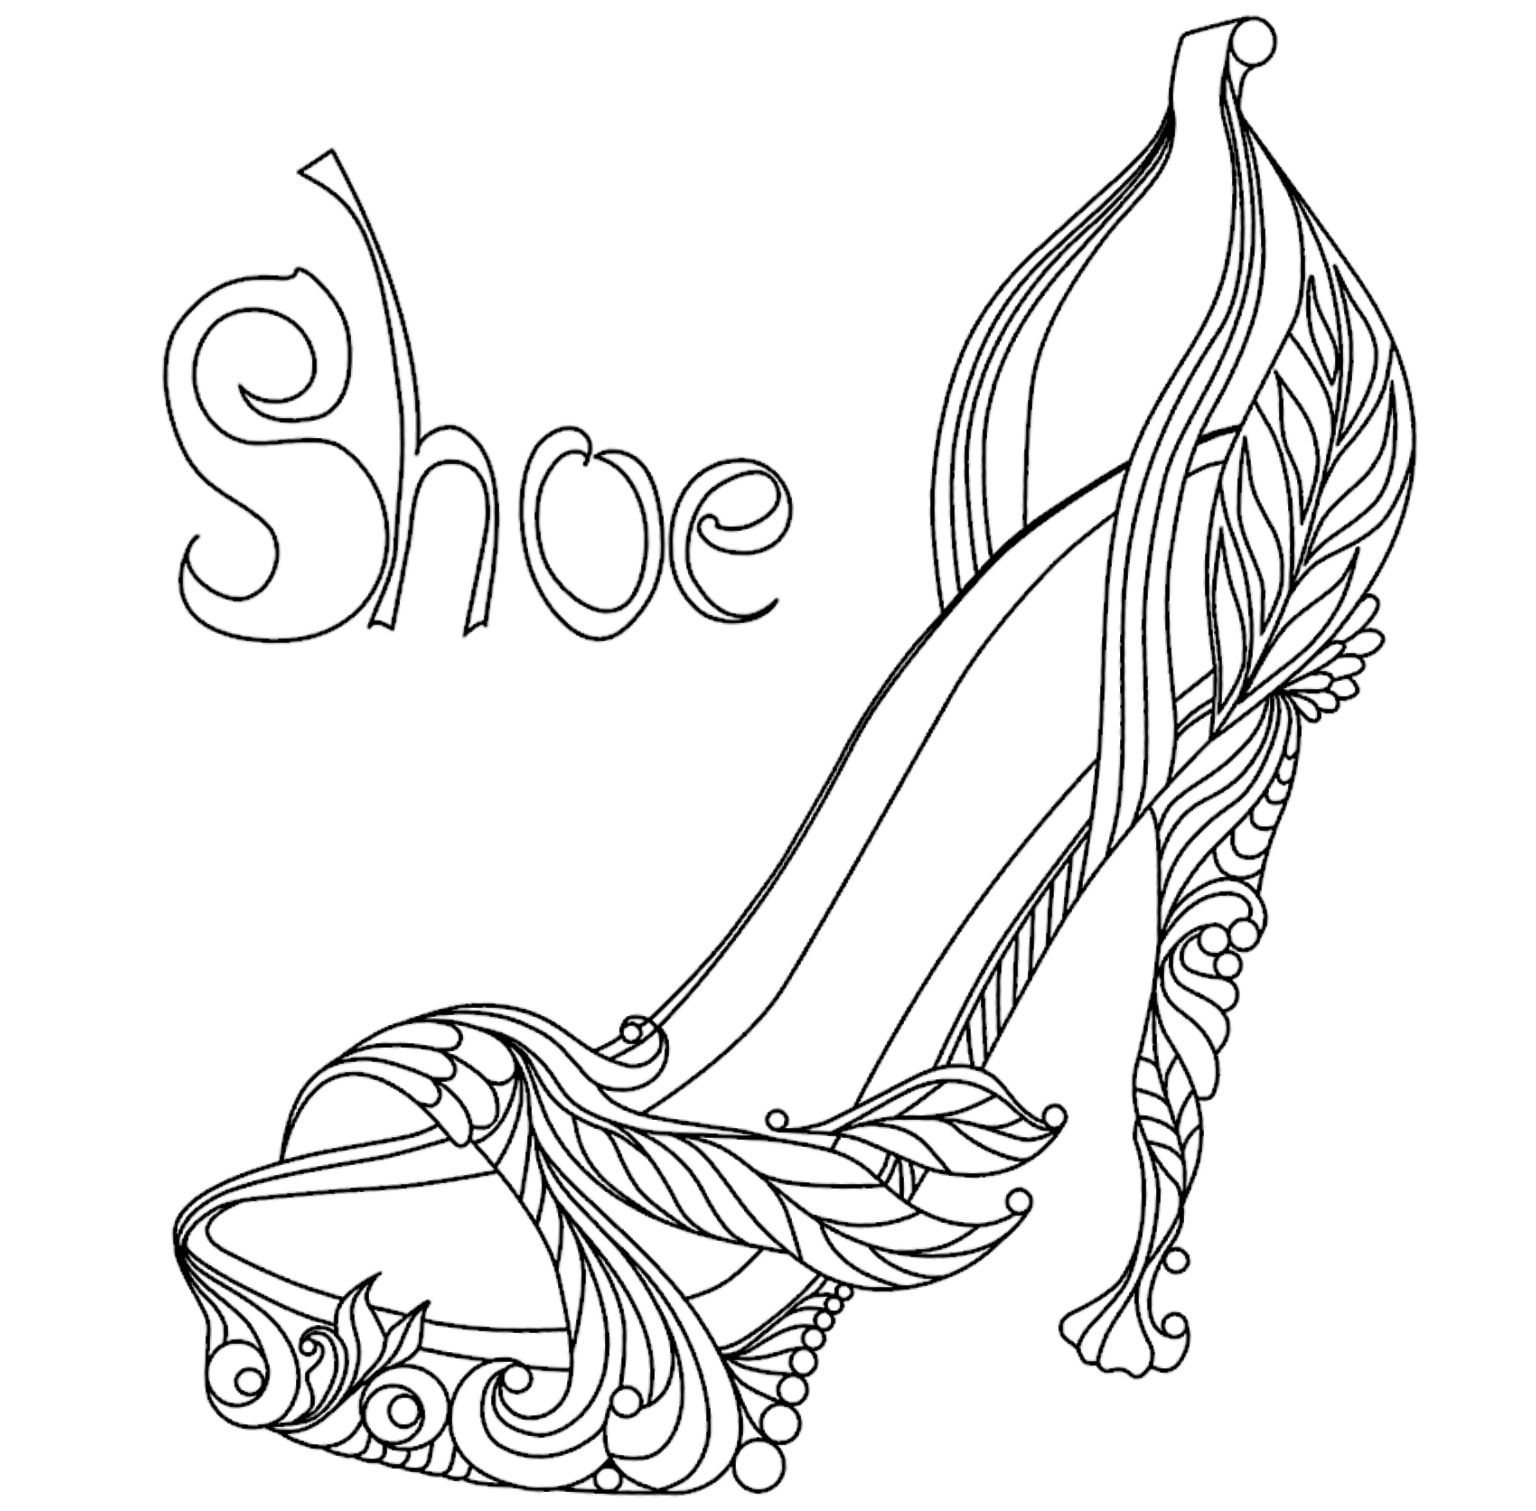 Shoe Coloring Page Shoe Template Valentine Coloring Pages